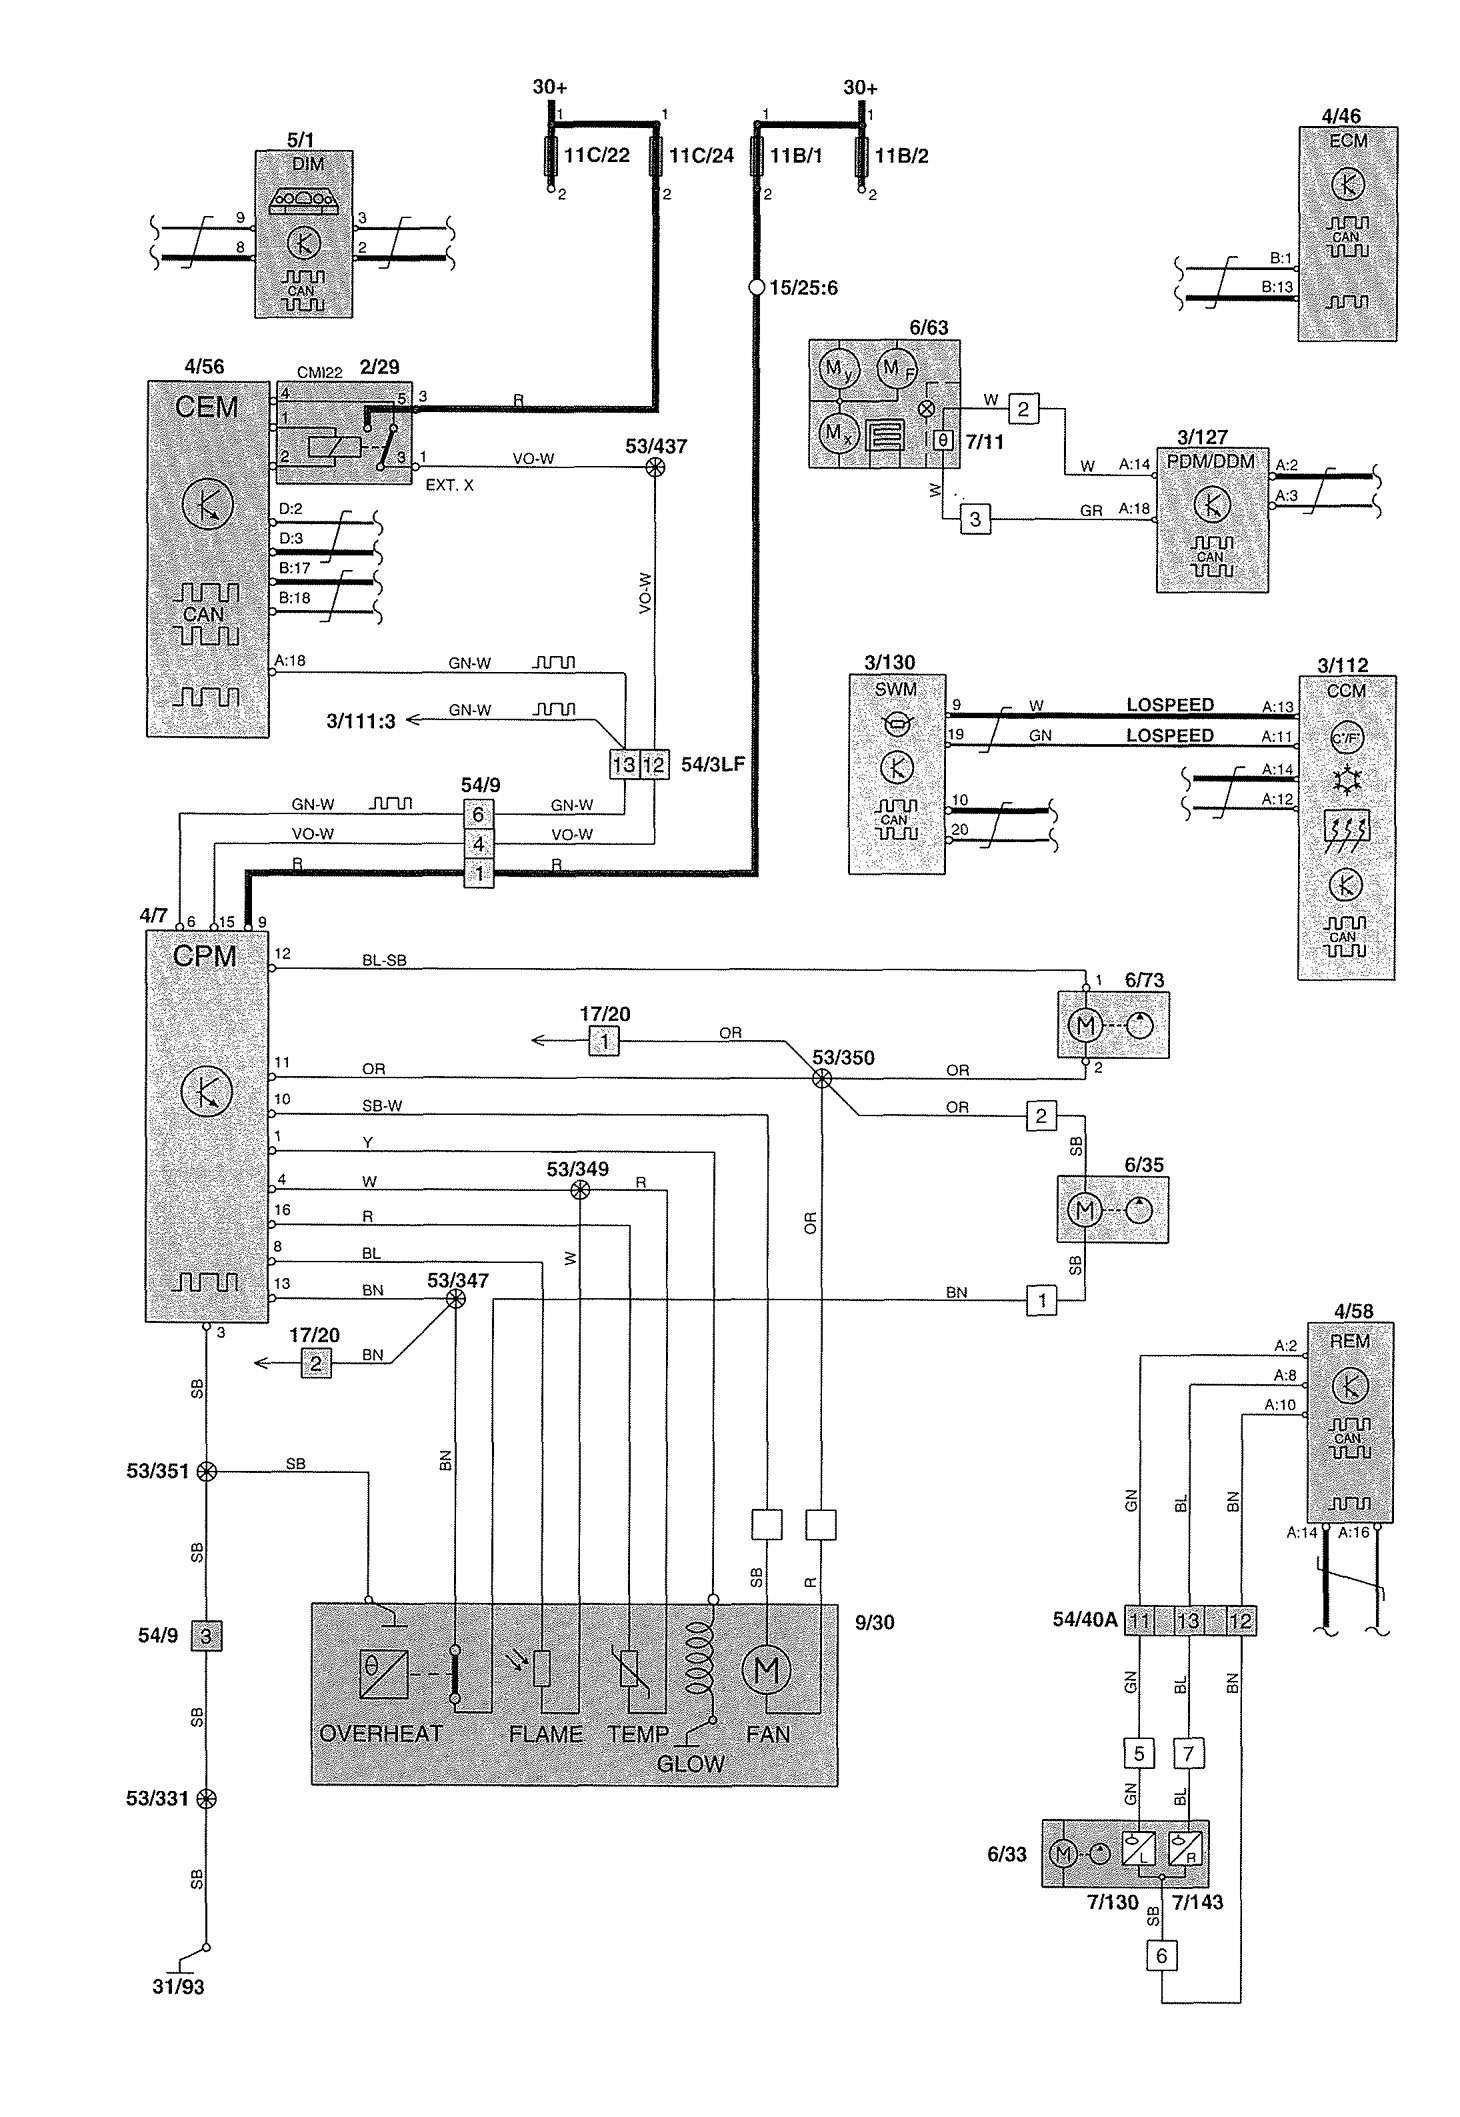 2006 Volvo Xc90 Electrical Wiring Diagram Will Be A C70 Stereo 2004 Headlight Navigation